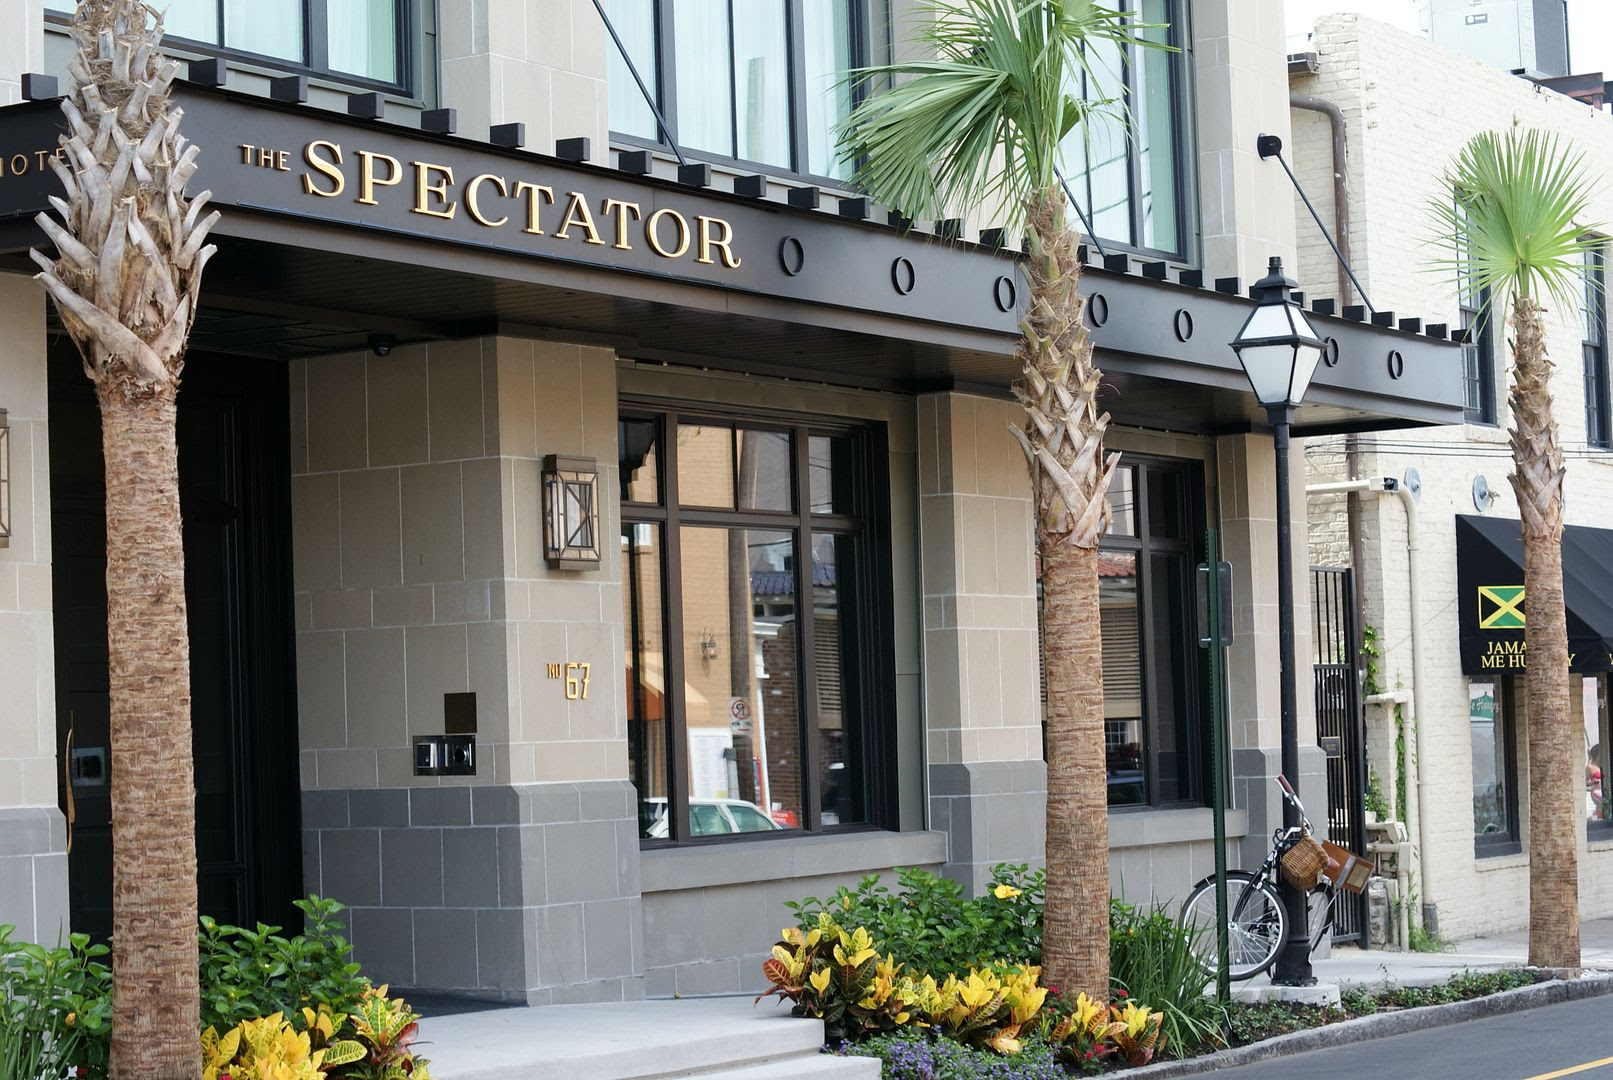 The Spectator Hotel